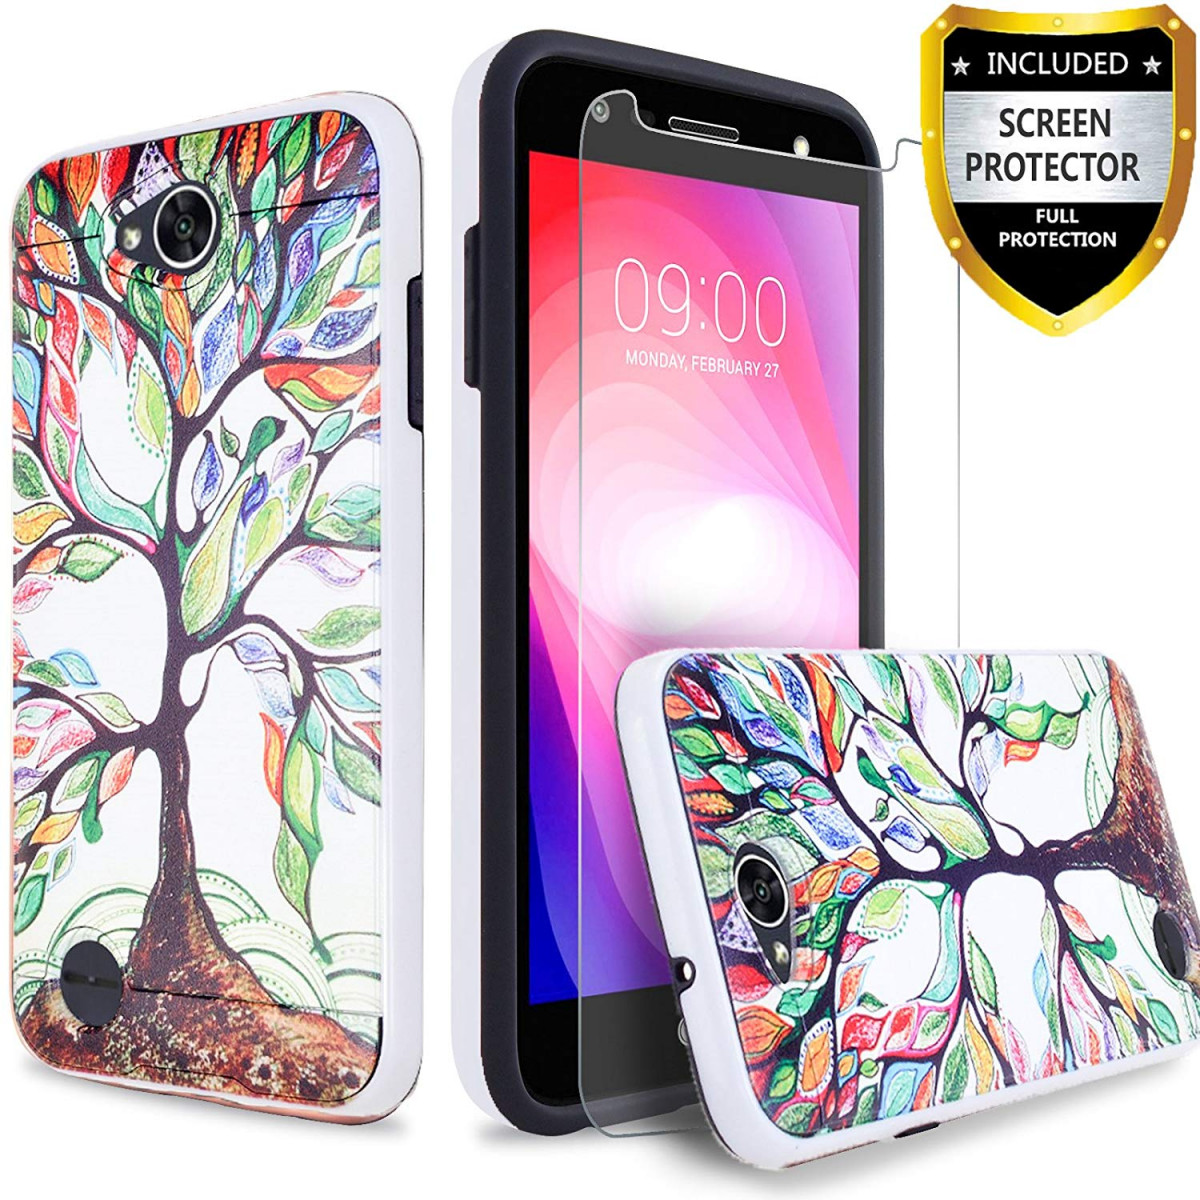 new product 48eb7 4d94c LG X Charge Case, LG Fiesta 2 Phone Case, LG Fiesta LTE Case, LG X Power 2  Case [Premium Screen Protector Included] Circlemalls Hybrid Shockproof Dual  ...